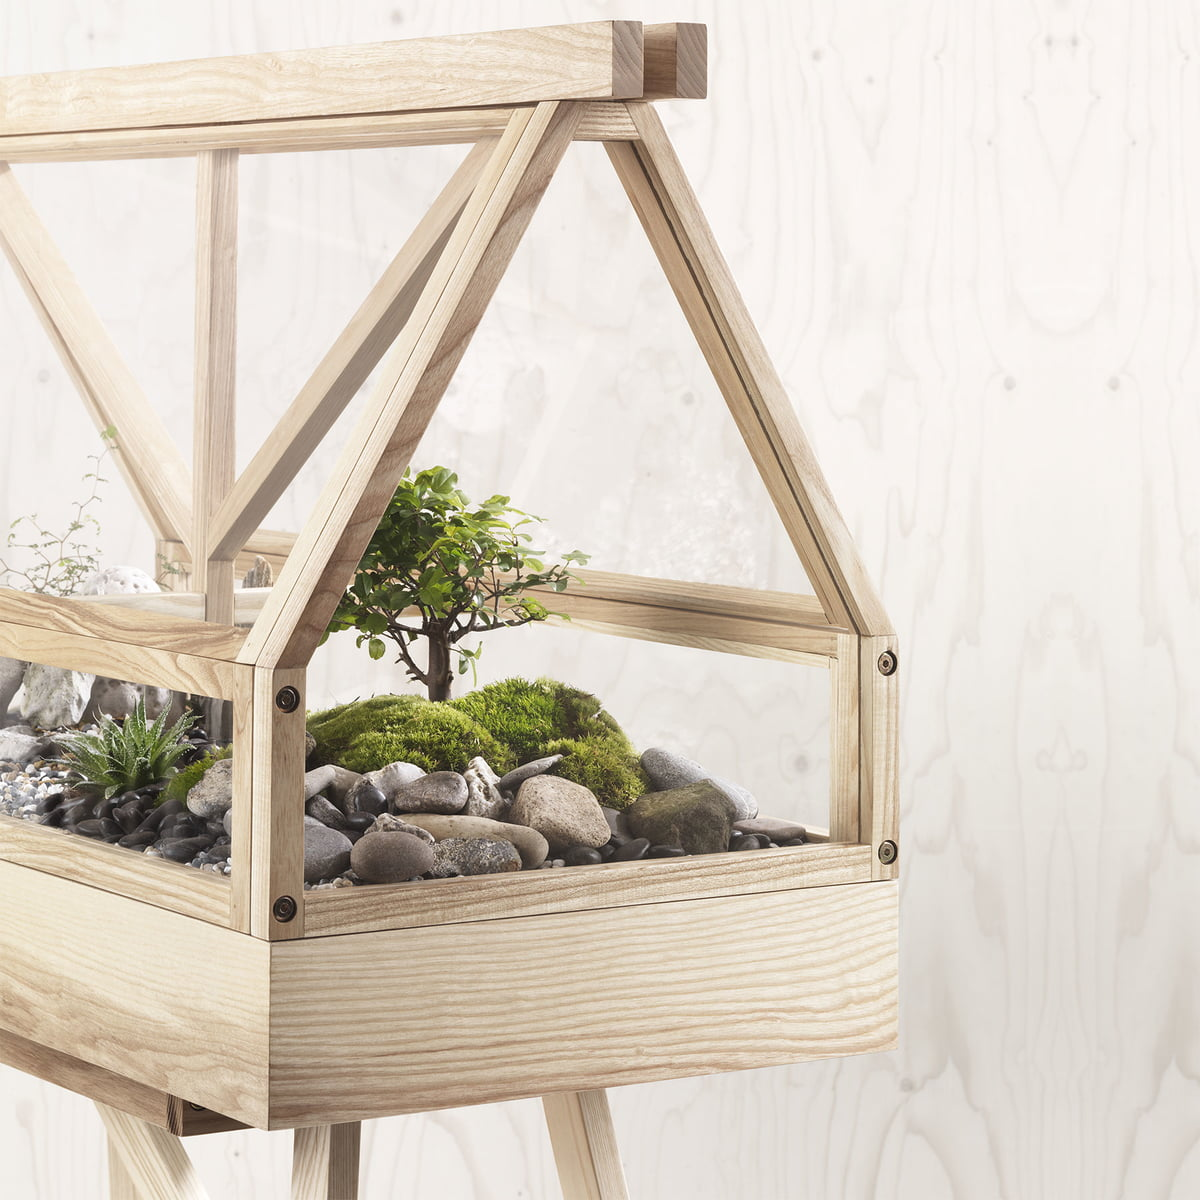 The Greenhouse terrarium by Design House Stockholm - Greenhouse By Atelier 2+ Available Online